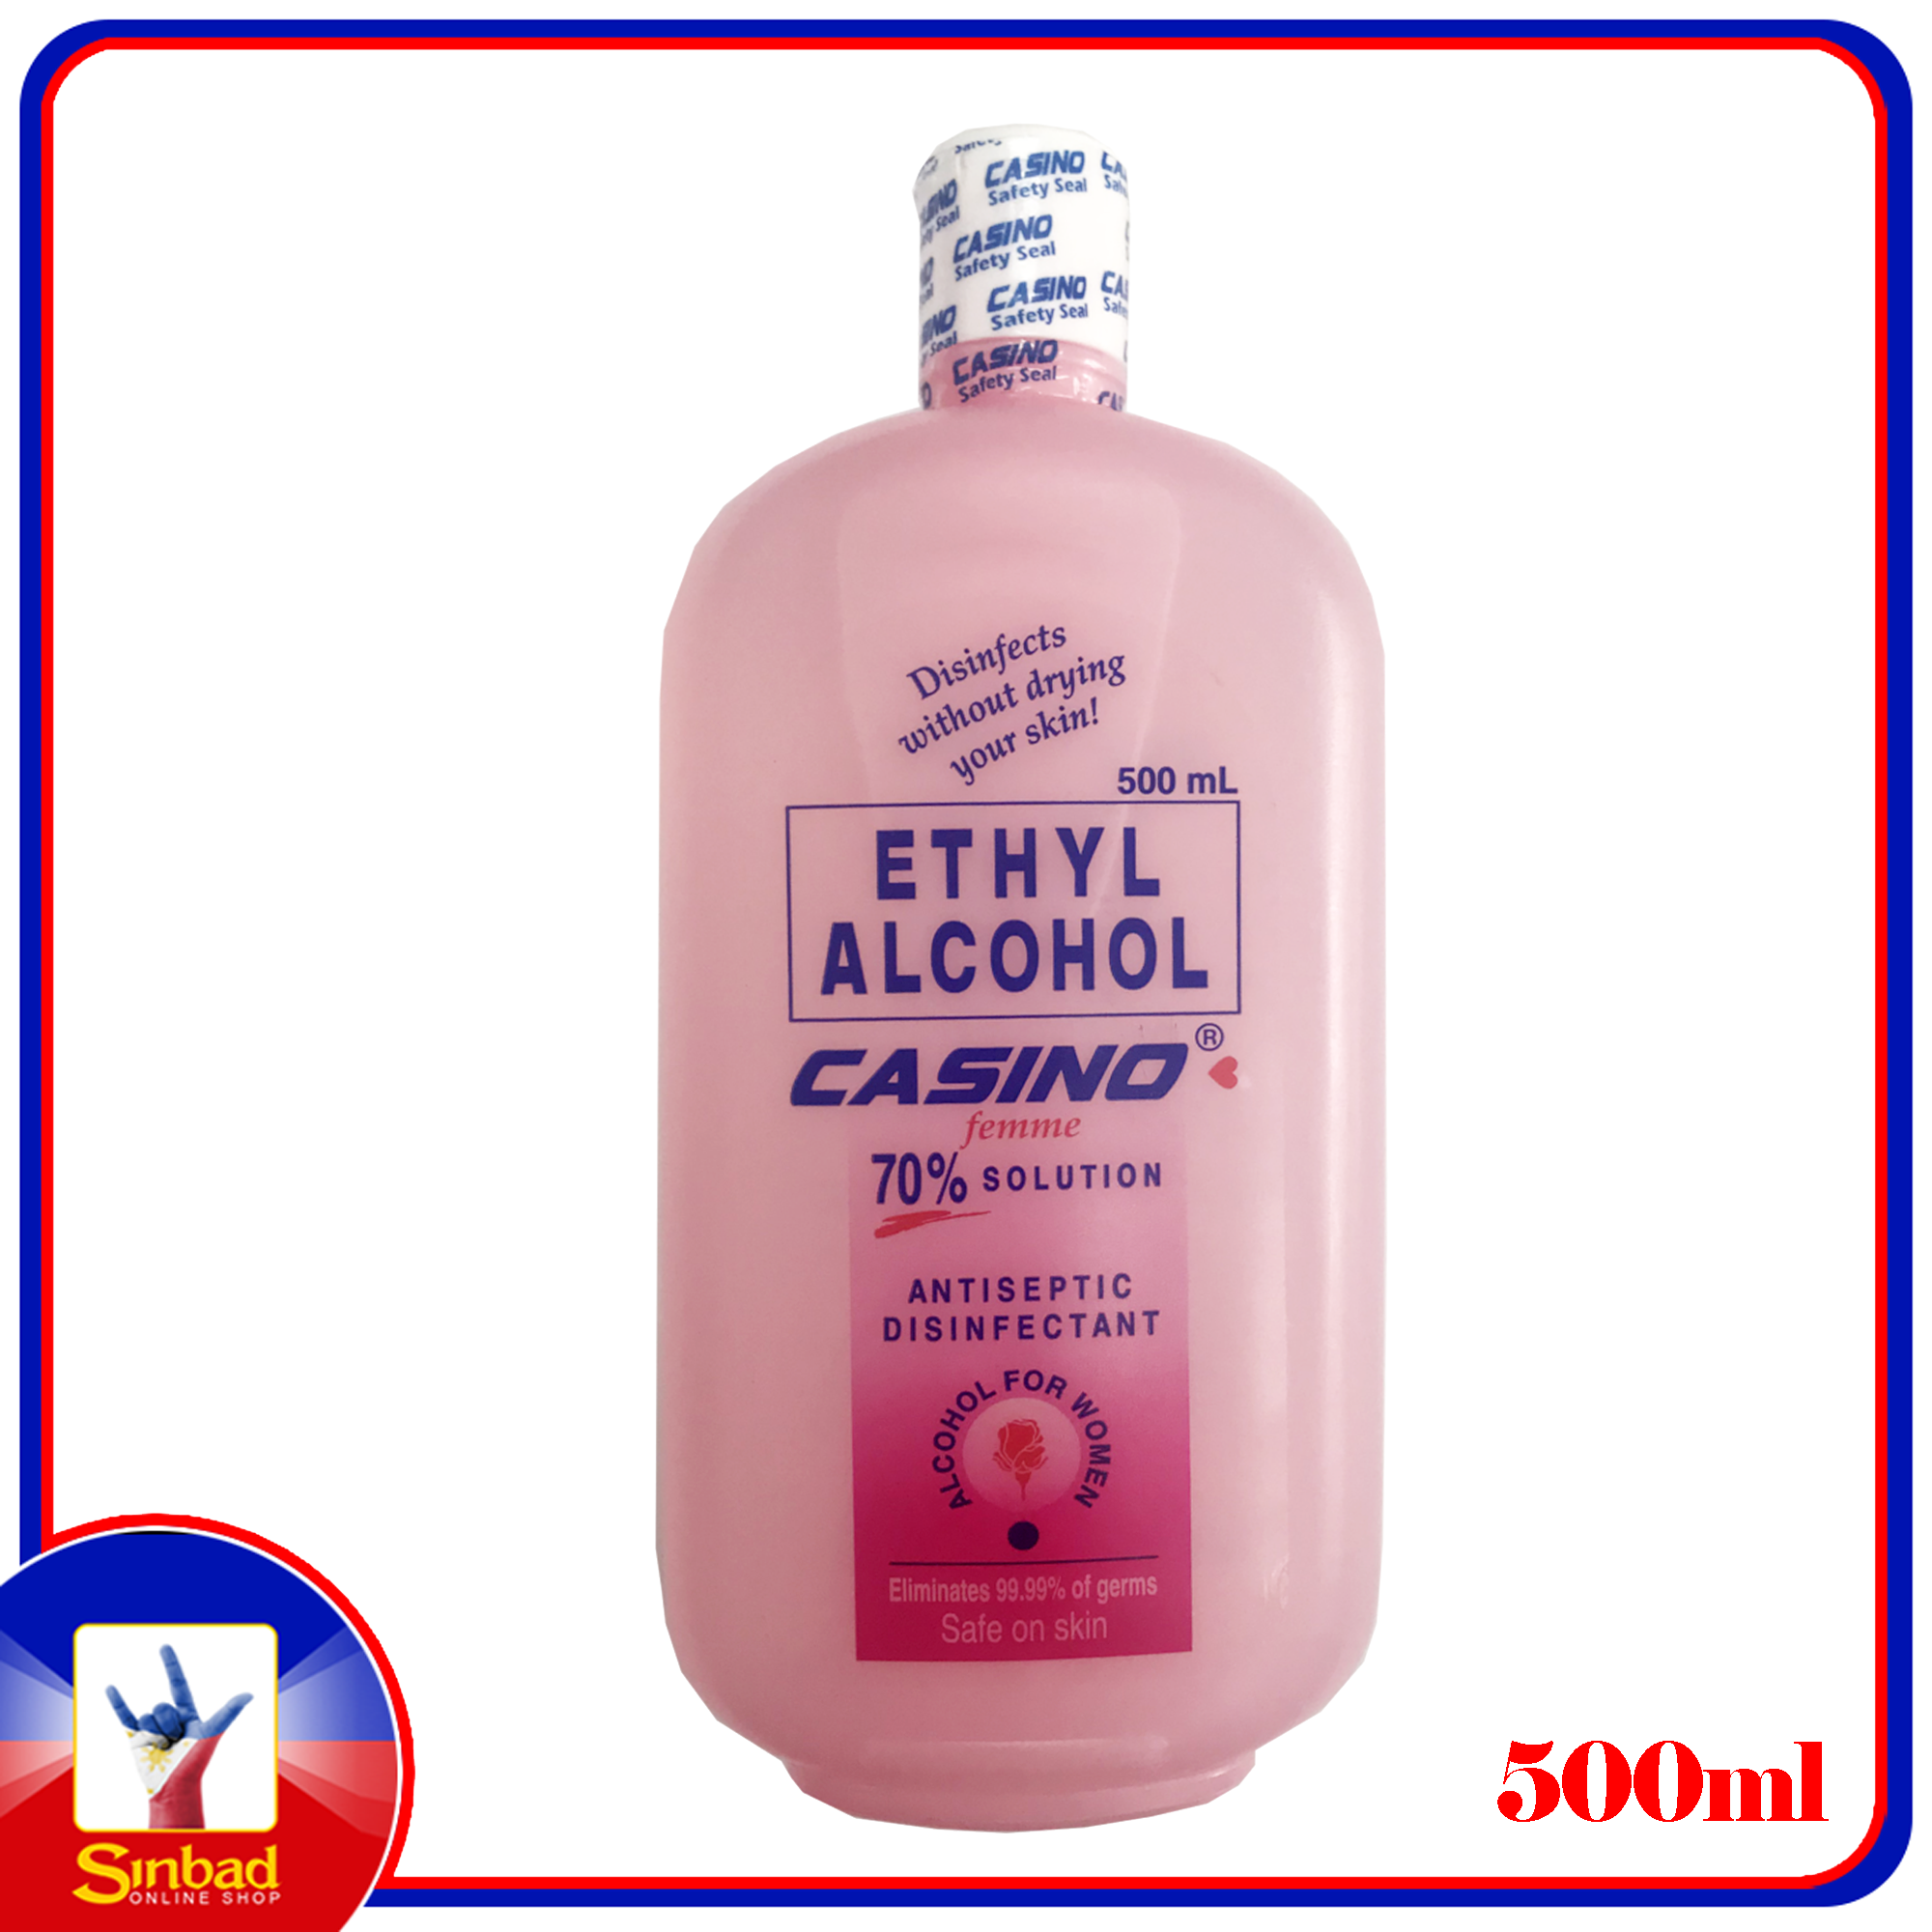 casino ethyl alcohol 70 solution antiseptic disinfectant 500ml - Alcohol For Women